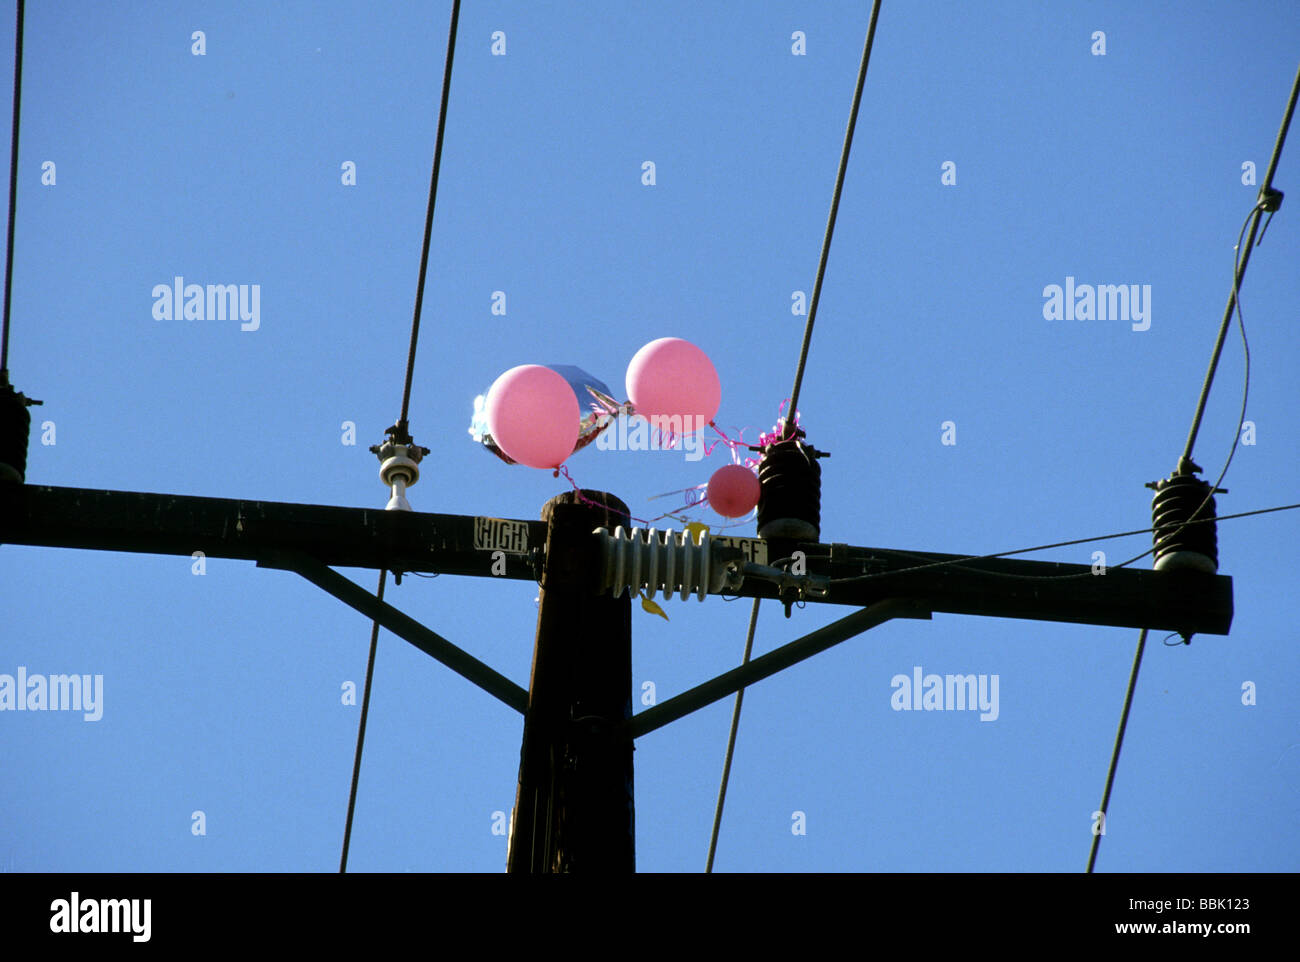 balloon foil high voltage power wire line danger risk threat short ...